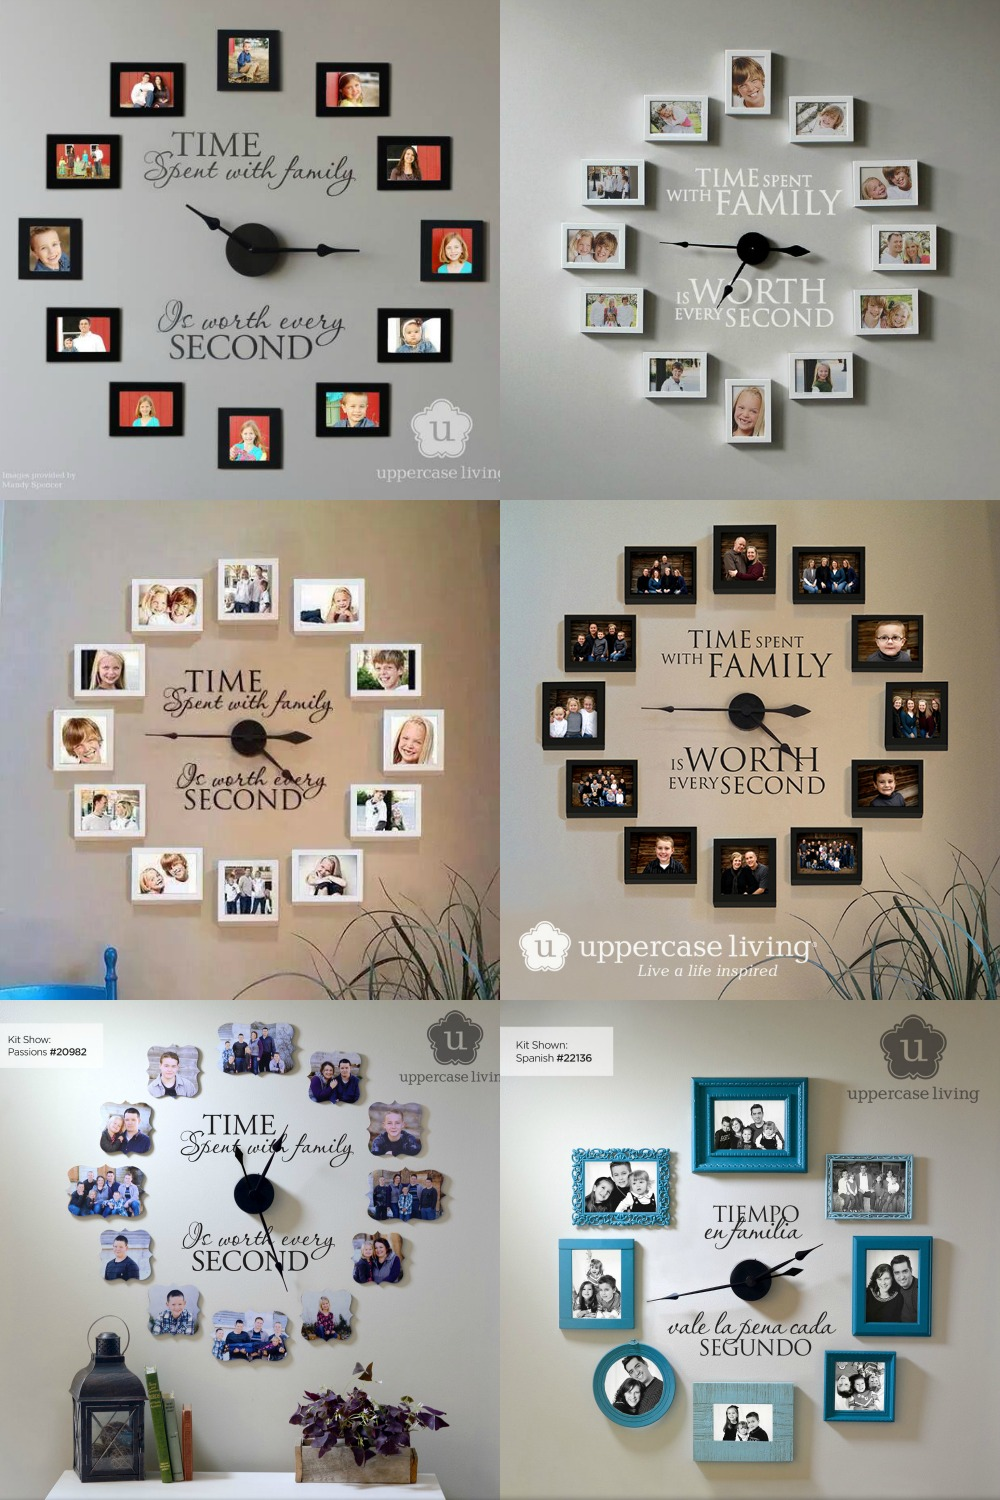 Classroom Design Tumblr ~ Time spent with family is worth every second photo wall